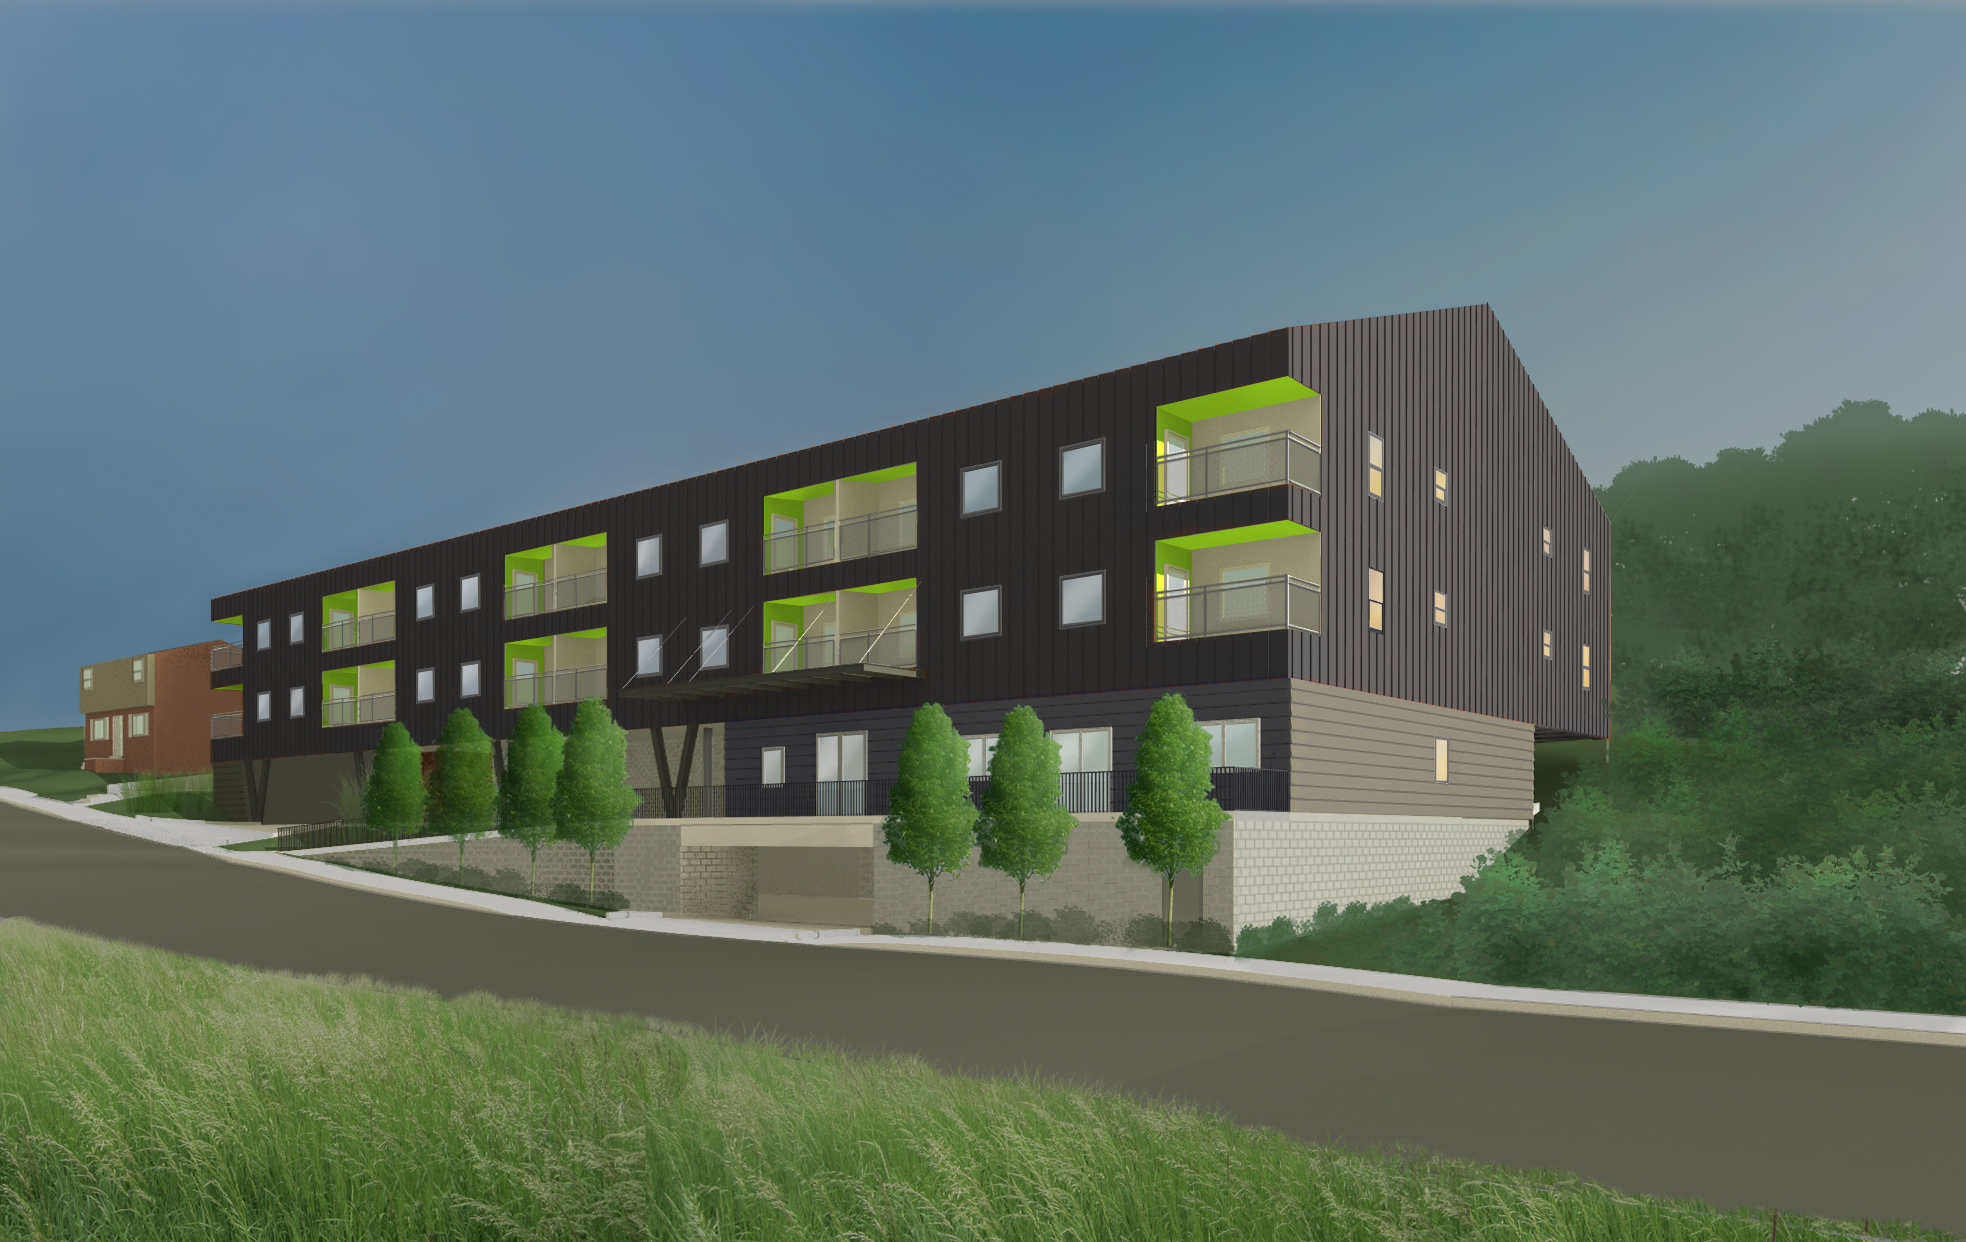 OPDC closes on $16 million financing of affordable rental housing